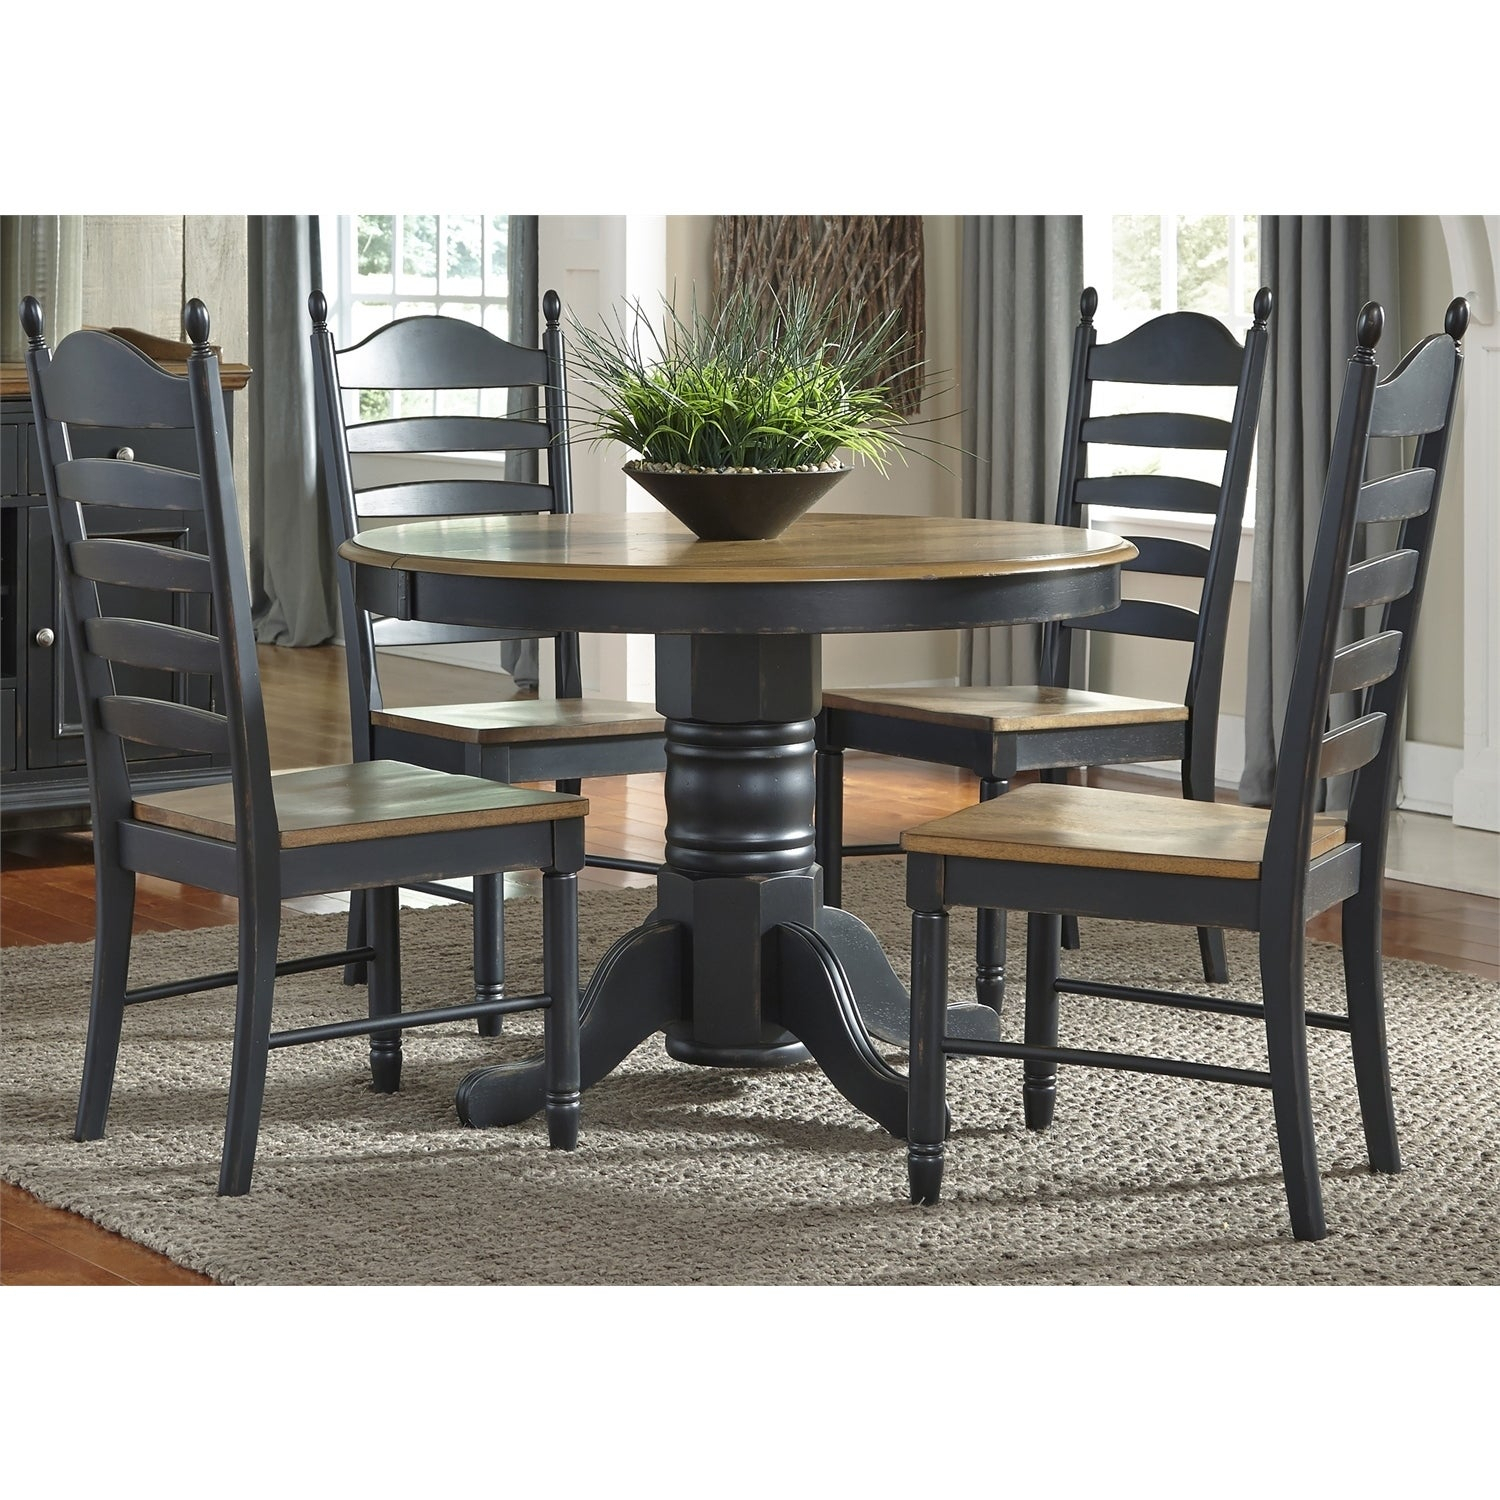 Liberty Honey And Black Oval Pedestal 5 Piece Dinette Set Throughout Most Recent Springfield 3 Piece Dining Sets (Photo 7 of 20)